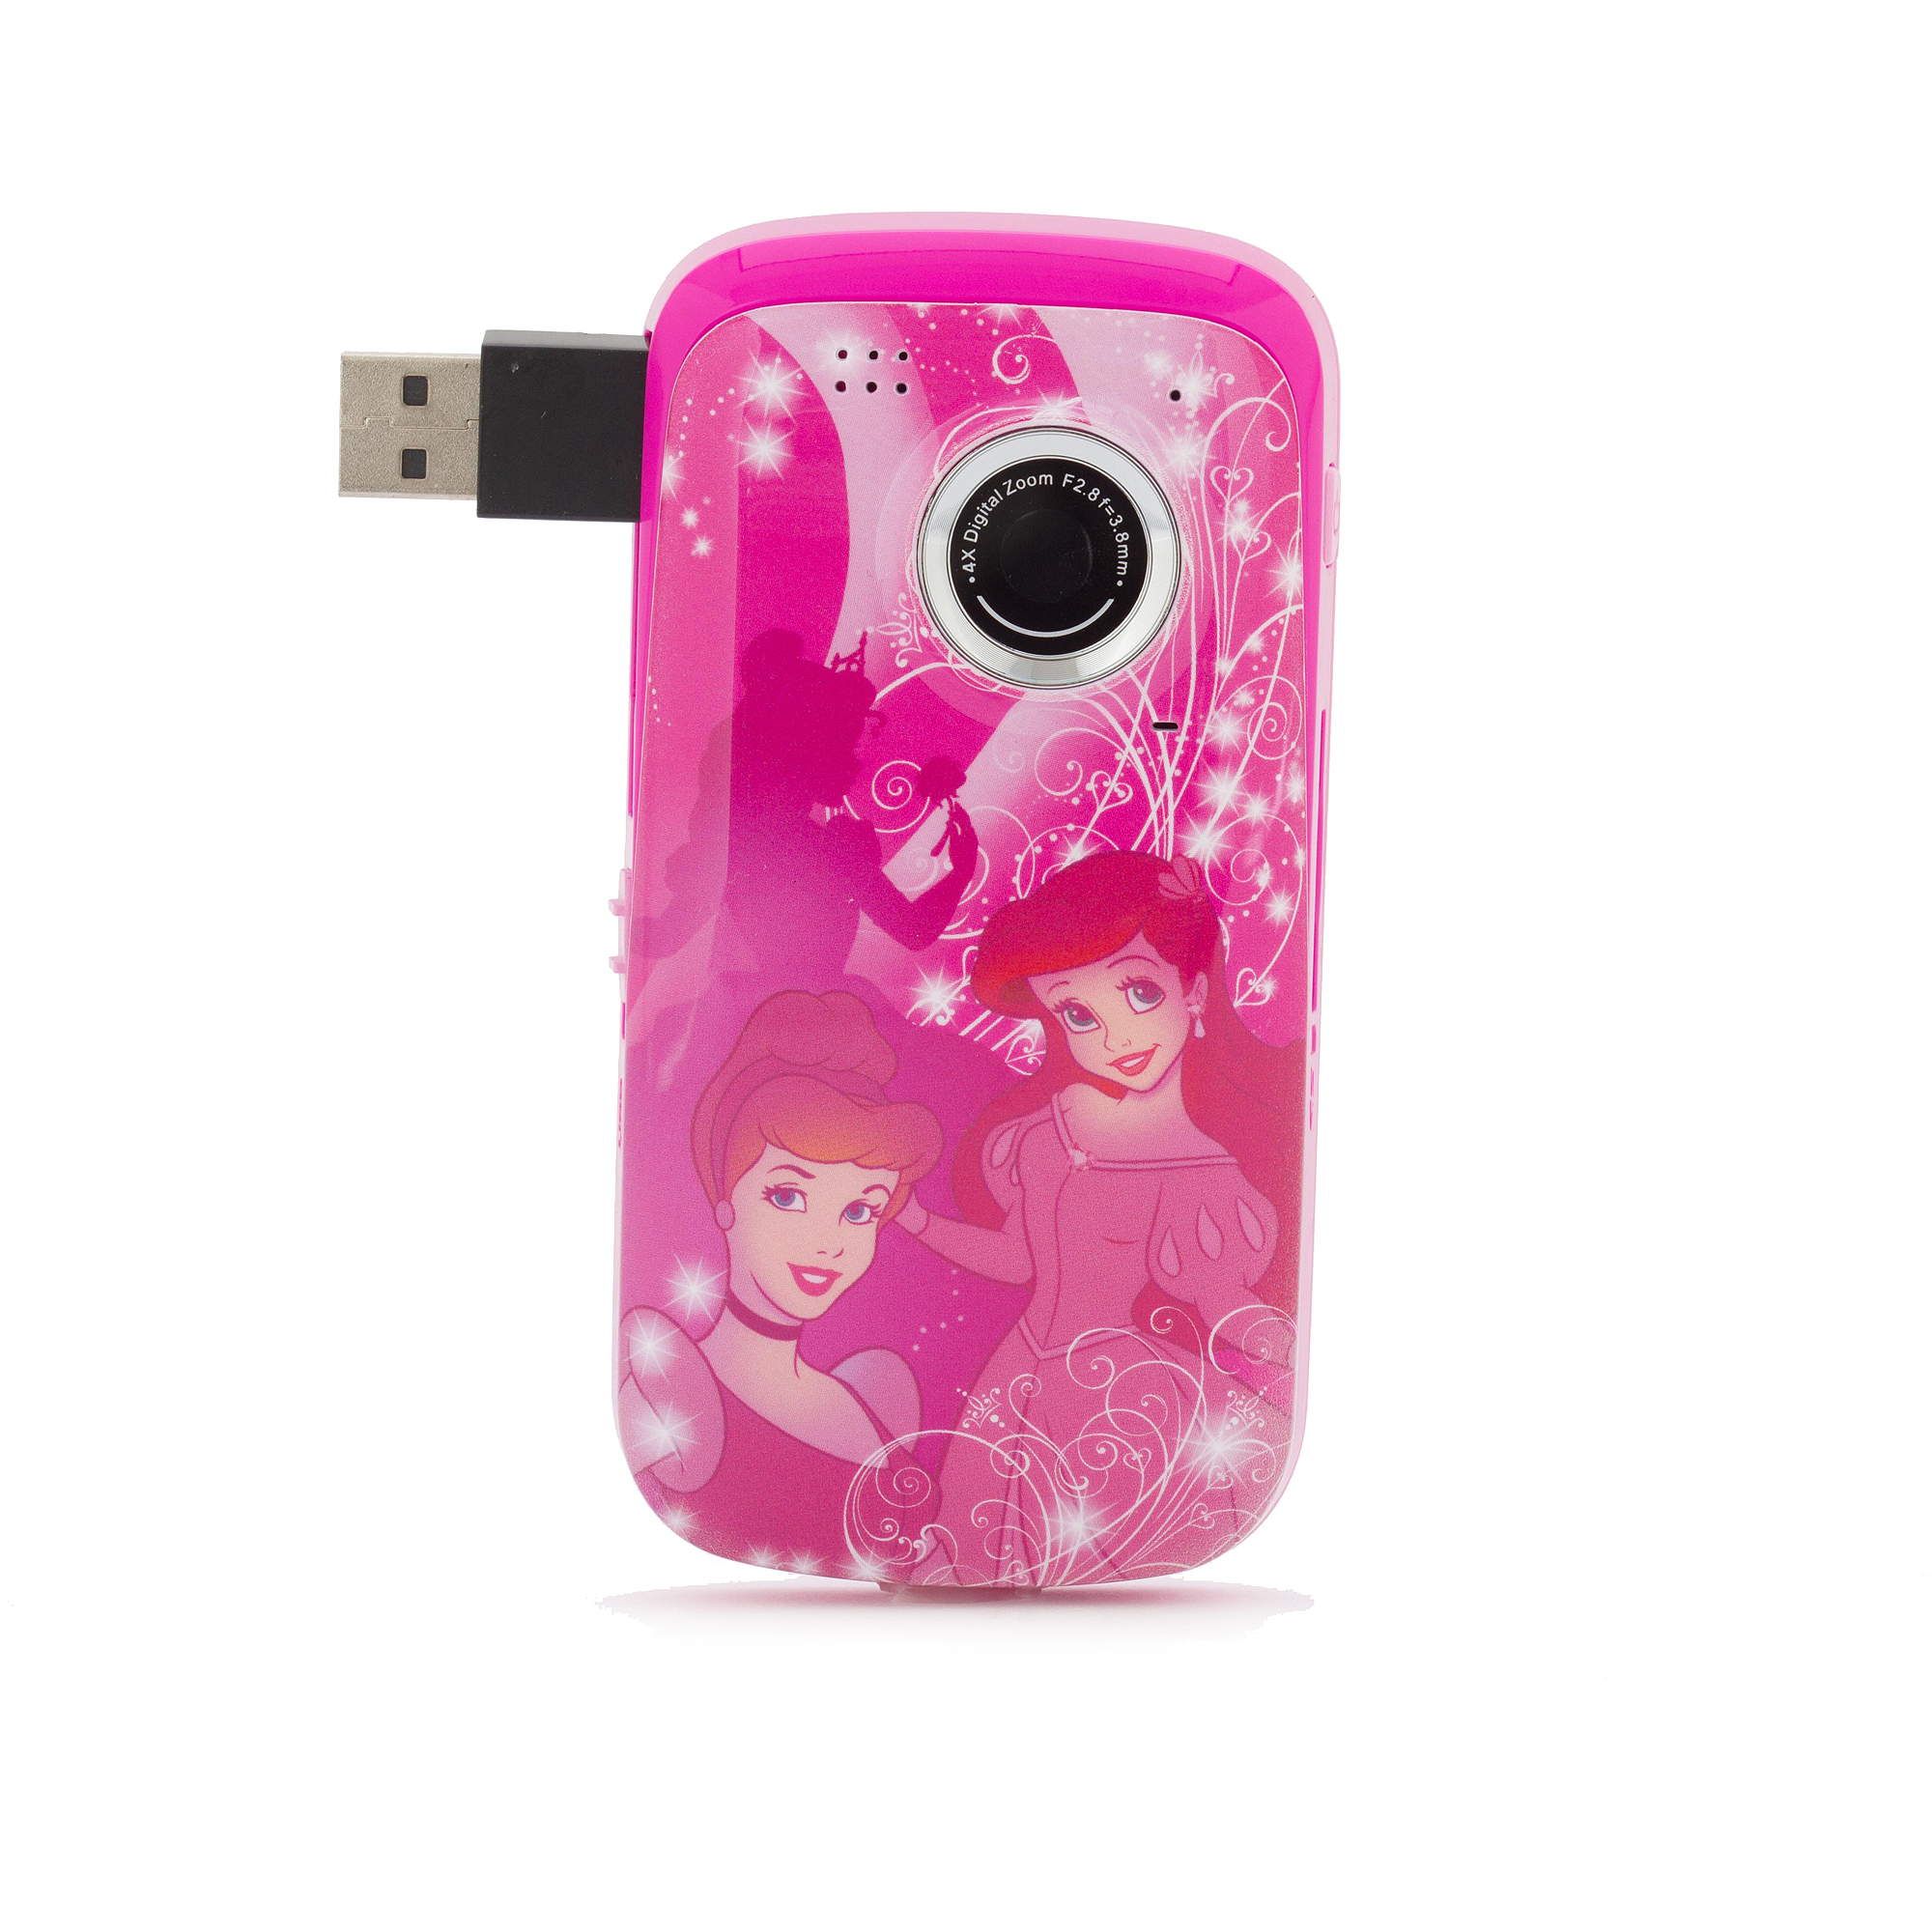 Disney Princess Digital Video Recorder (38005)